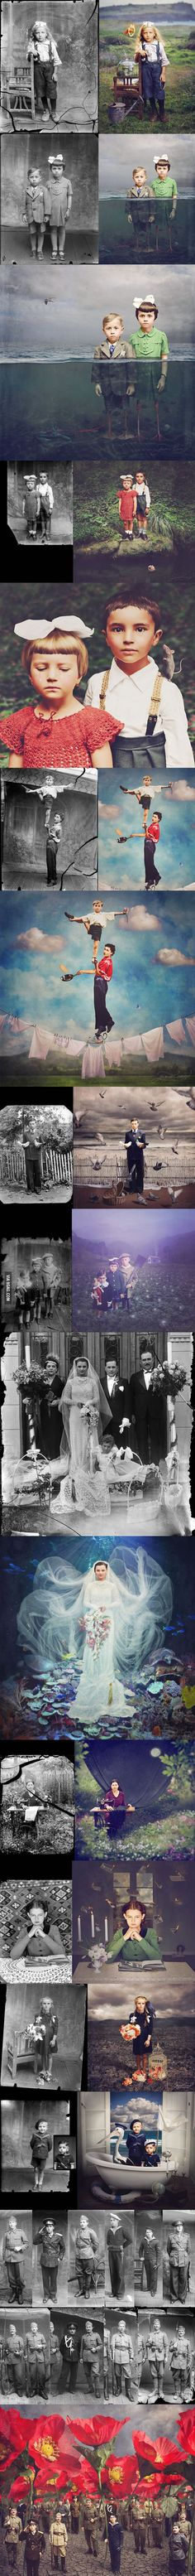 Artist colorizes old photos with surreal twists (by Jane Long) - poetic view Photomontage, Creative Photography, Art Photography, Montage Photography, School Photography, Conceptual Photography, Photography Editing, Artistic Photography, Atelier Photo